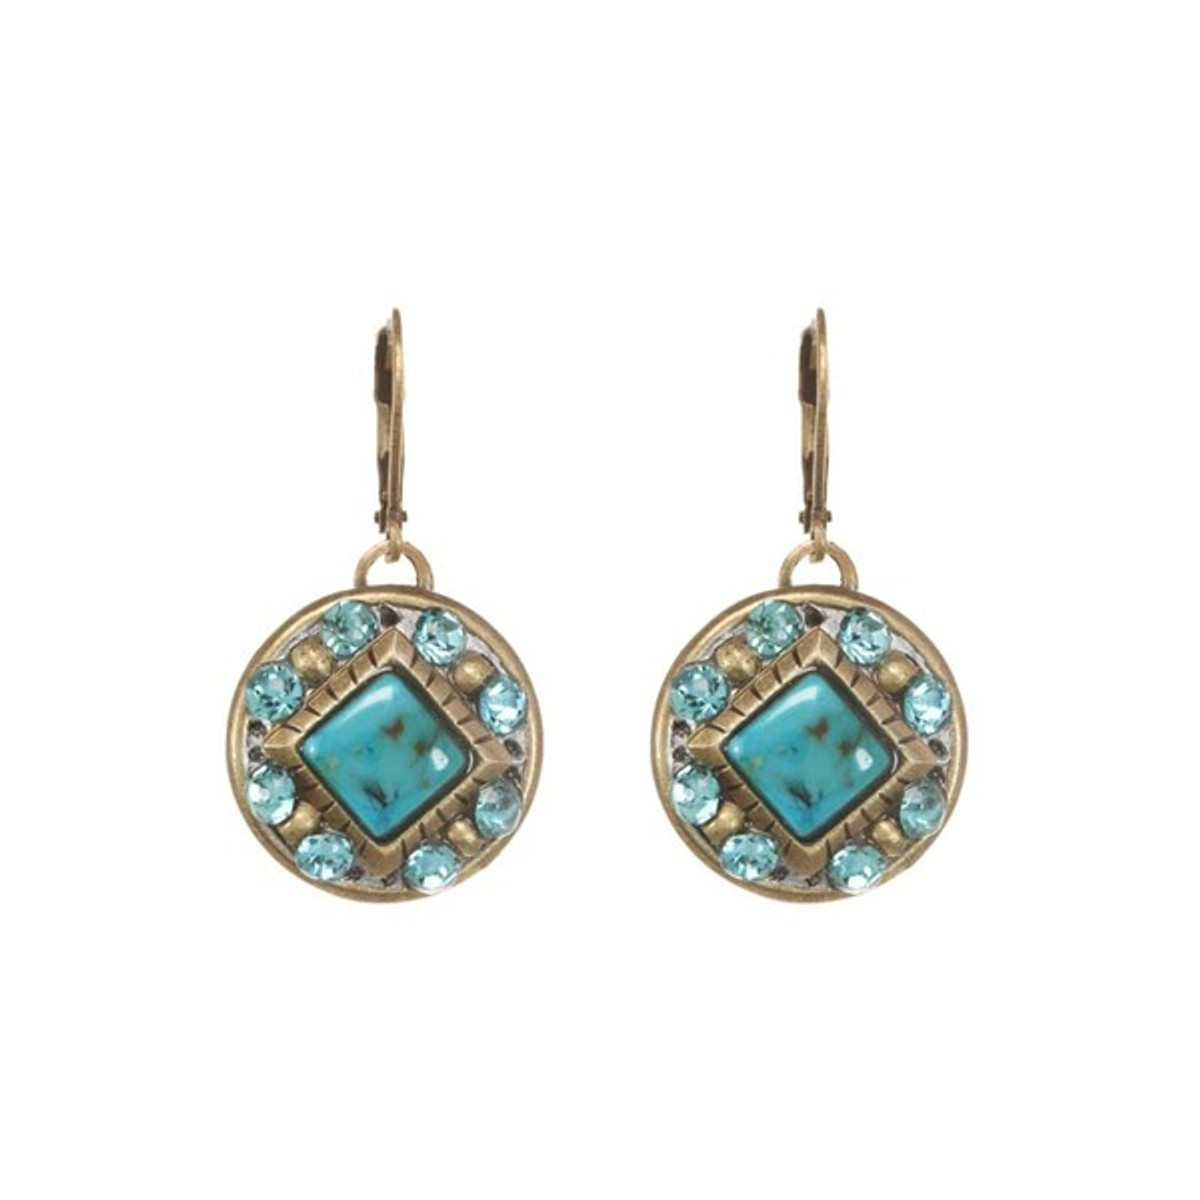 Nile earrings from Michal Golan Jewelry